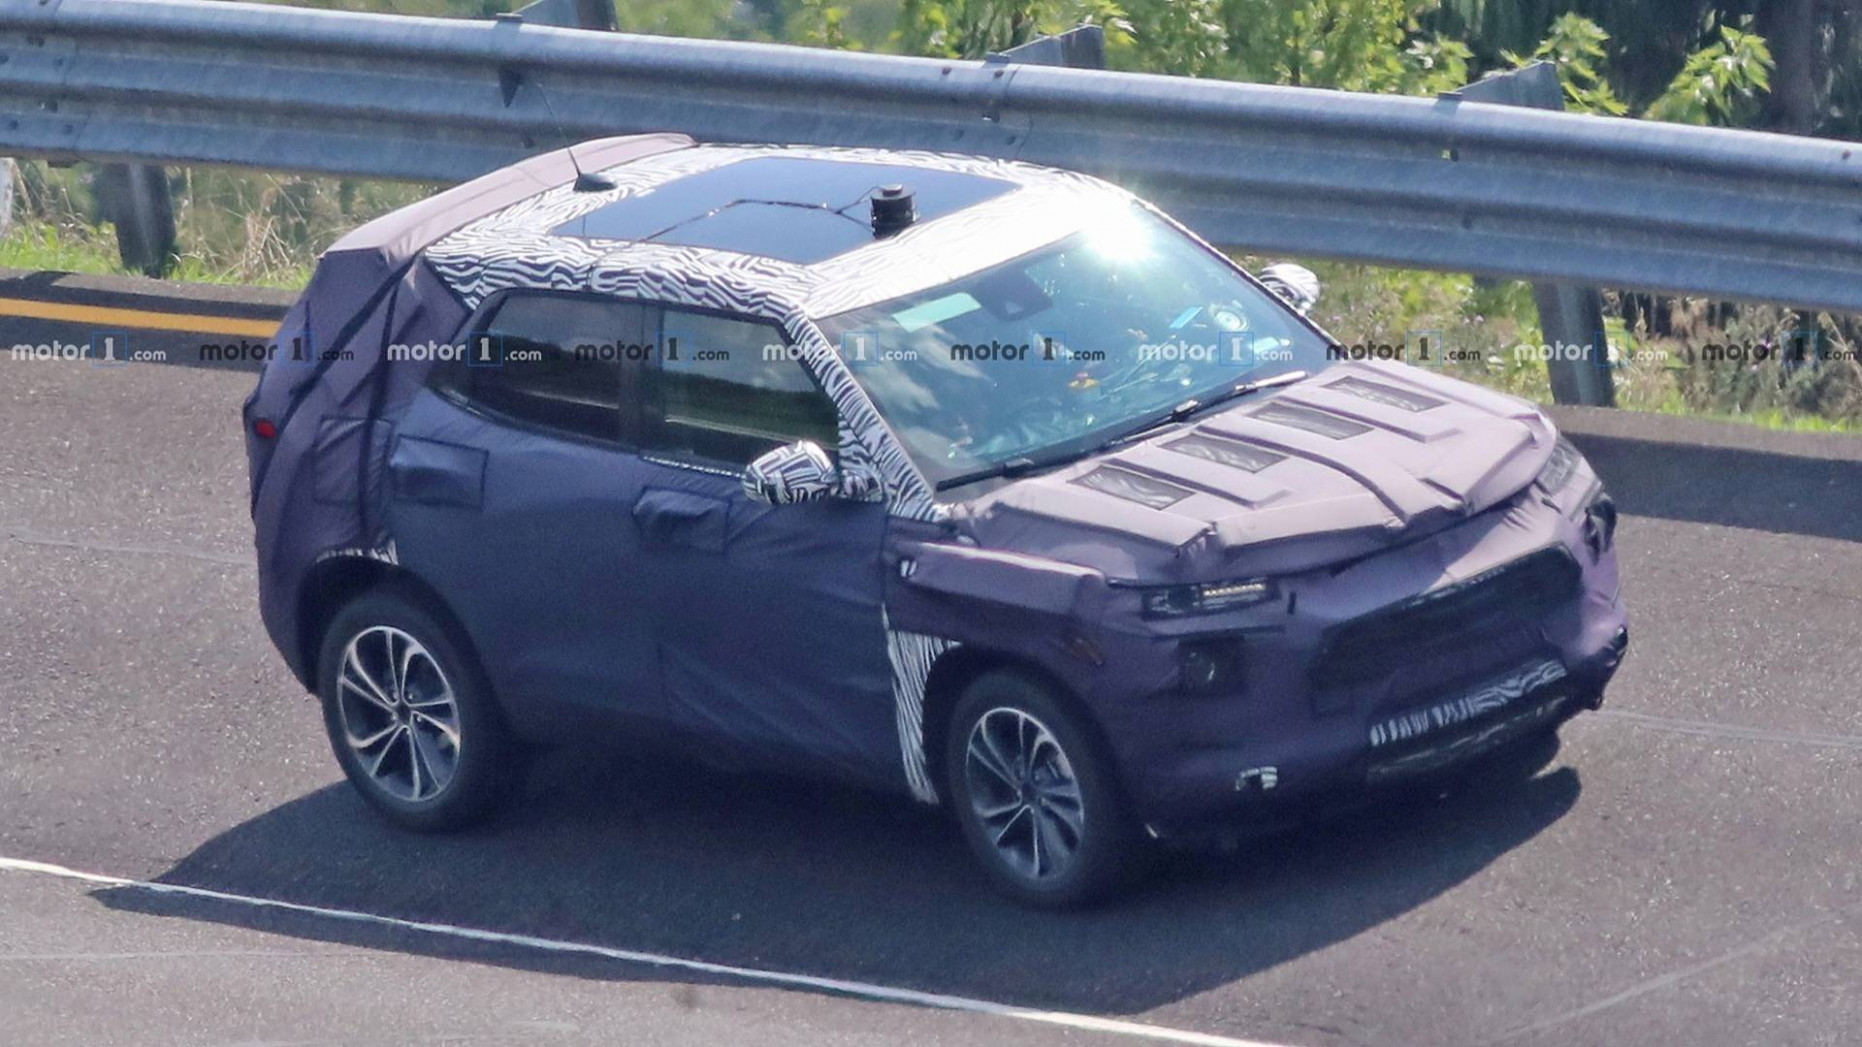 Redesigned 7 Chevrolet Trax SUV Spied For The First Time - 2020 chevrolet trax